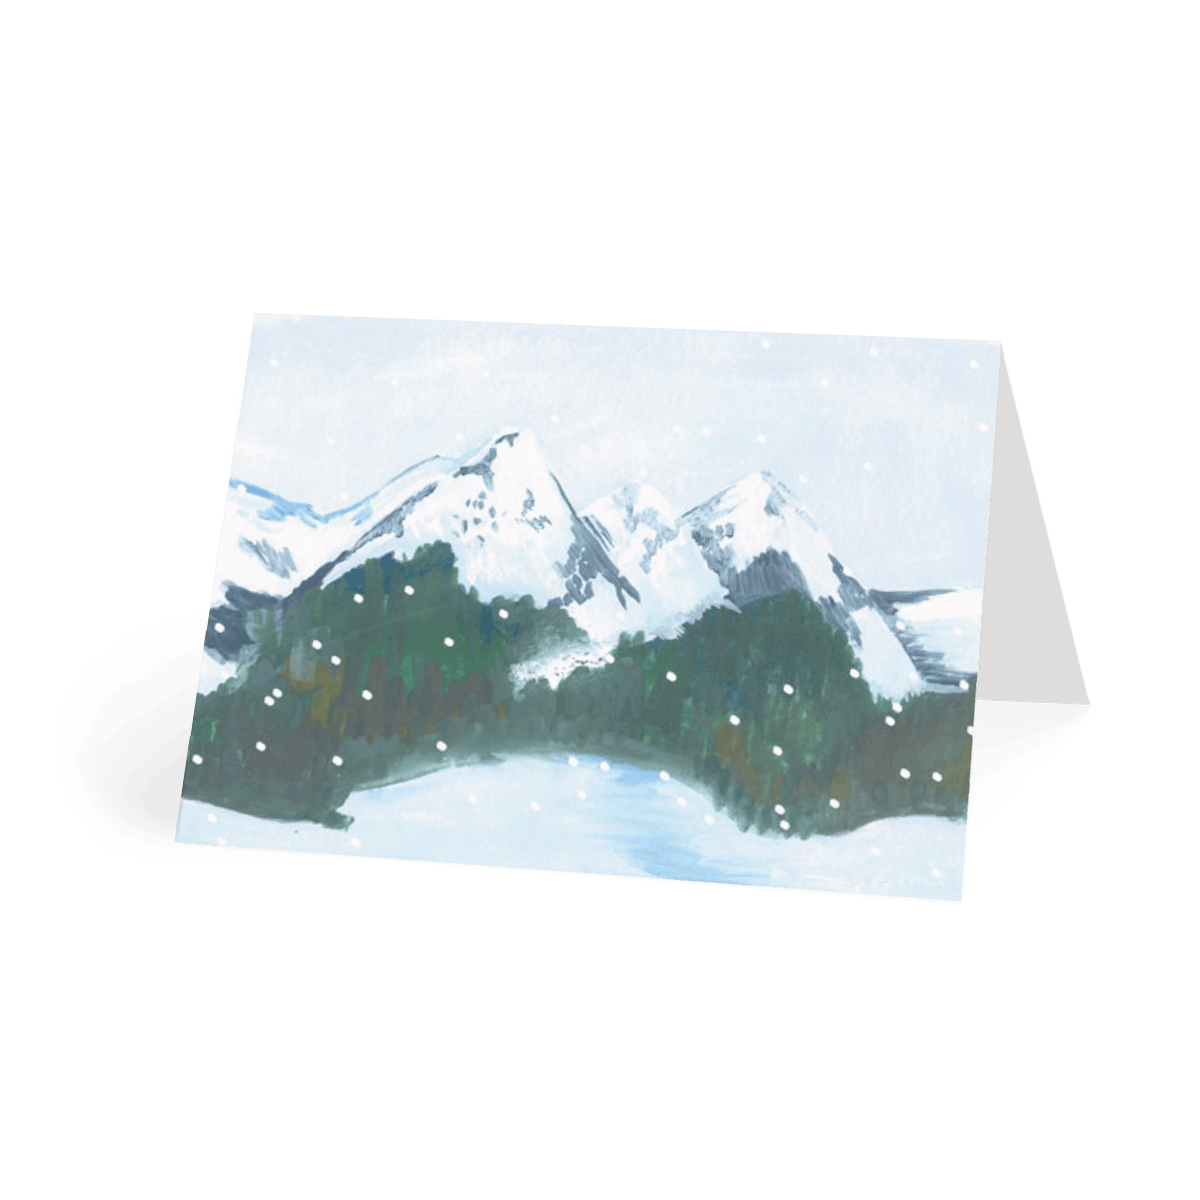 Https%3a%2f%2fwww.papier.com%2fproduct image%2f11082%2f14%2fsnowy mountains 2818 front 1474027238.png?ixlib=rb 1.1